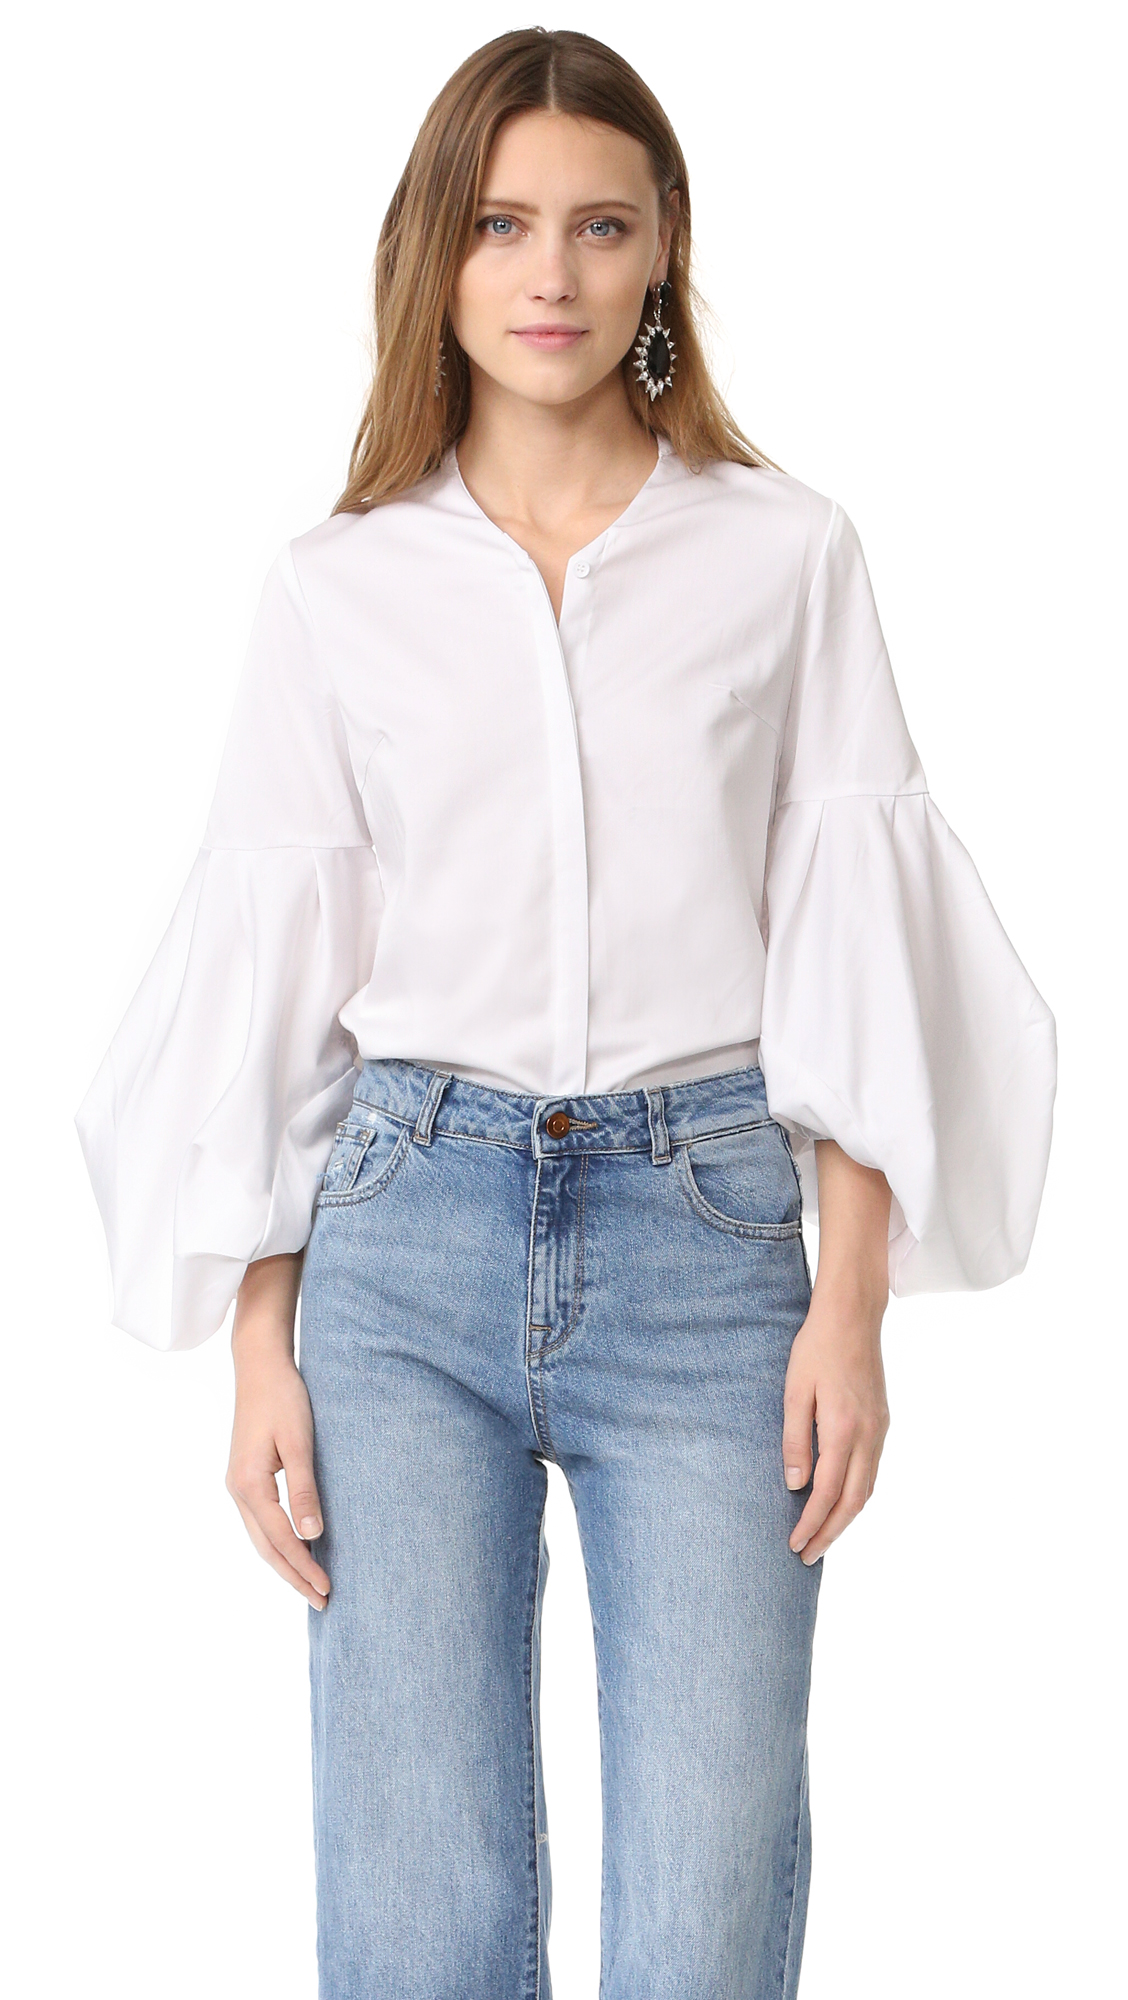 A daring Style Mafia top with drawstring cuffs at the long poet sleeves. V neckline and concealed button placket. Fabric: Plain weave. 65% cotton/32% nylon/3% polyurethane. Wash cold. Imported, China. Measurements Length: 25.5in / 64.5cm, from shoulder Measurements